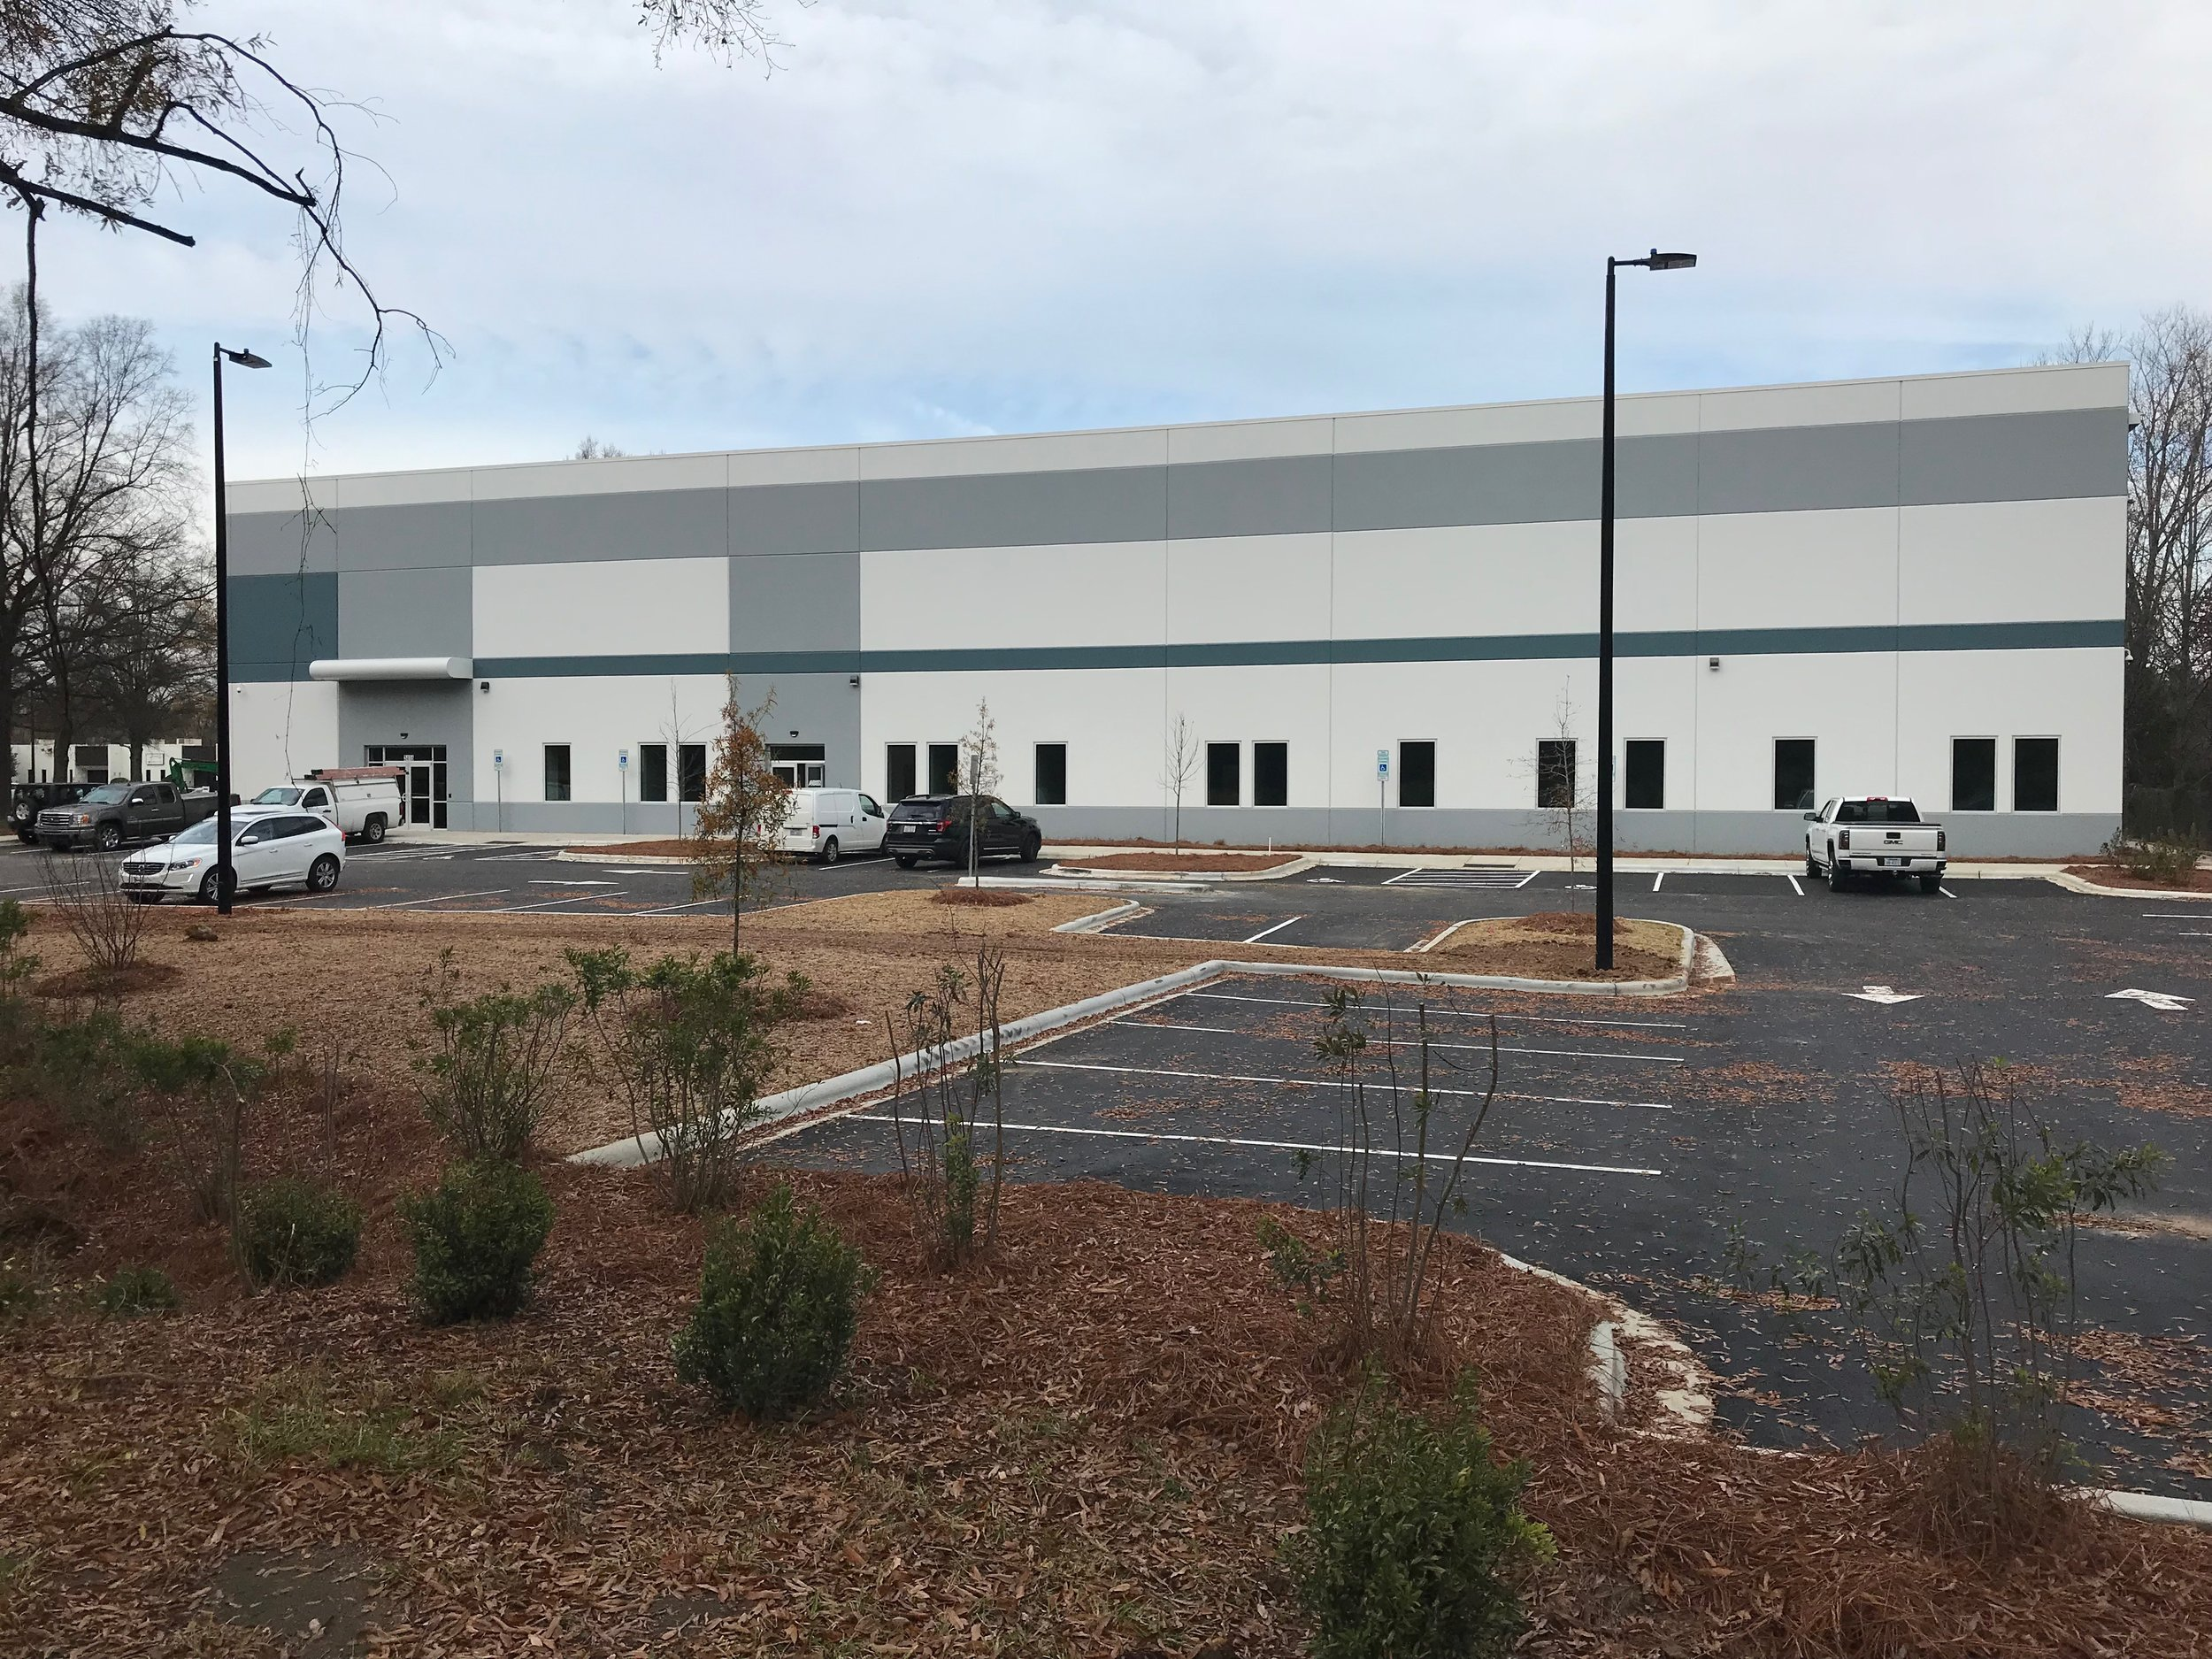 Anixter - Trade Park Court - 50,000 square foot building.   Click below to see the press release listing D&A as the Civil Engineer For Anixter on Trinity Capital Advisor's website:   http://www.trinitycapitaladvisors.com/trinity-capital-advisors-anixter-south-end-business-park/